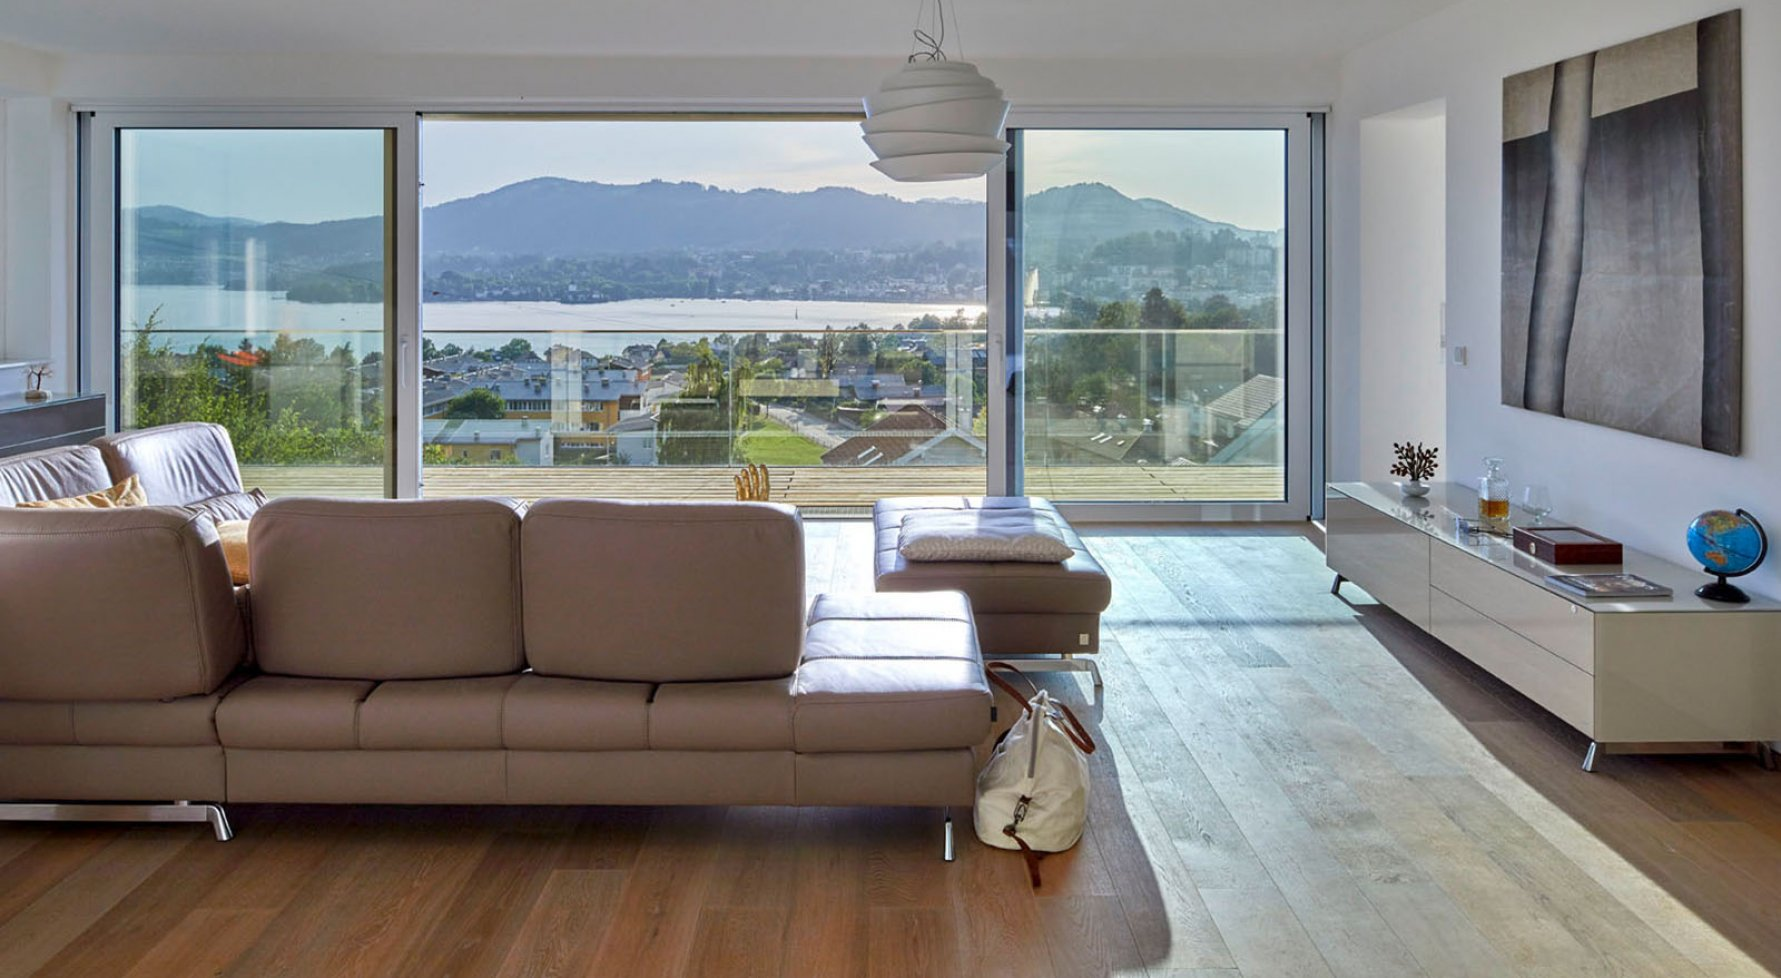 Property in 4810 Gmunden am Traunsee: Enjoy leisure time at your secondary residence! Space wonder with a large terrace  - picture 1